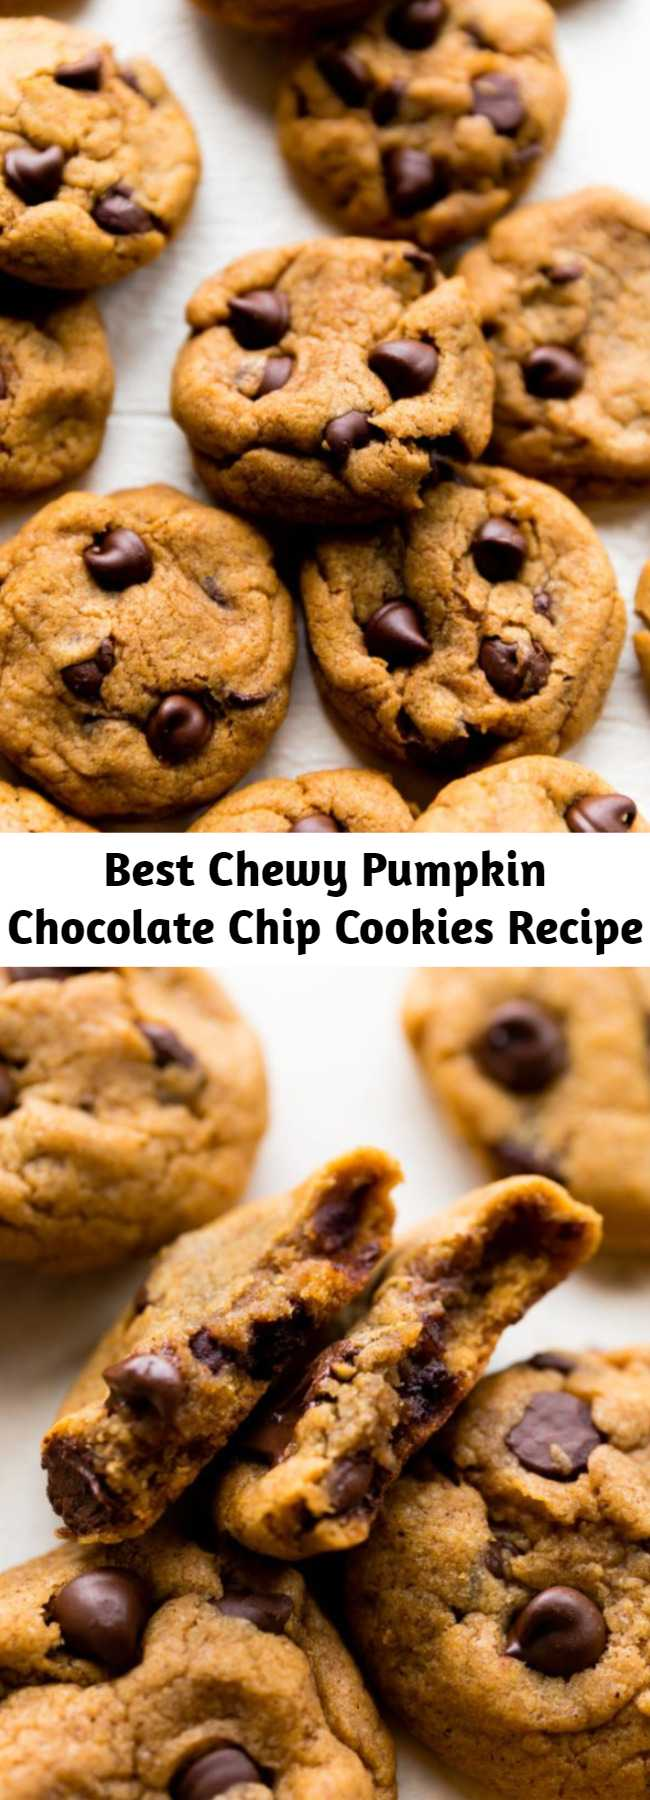 Best Chewy Pumpkin Chocolate Chip Cookies Recipe - I'm confident you'll love these pumpkin chocolate chip cookies! Omitting the egg, using melted butter, and blotting the pumpkin guarantee a chewier texture.